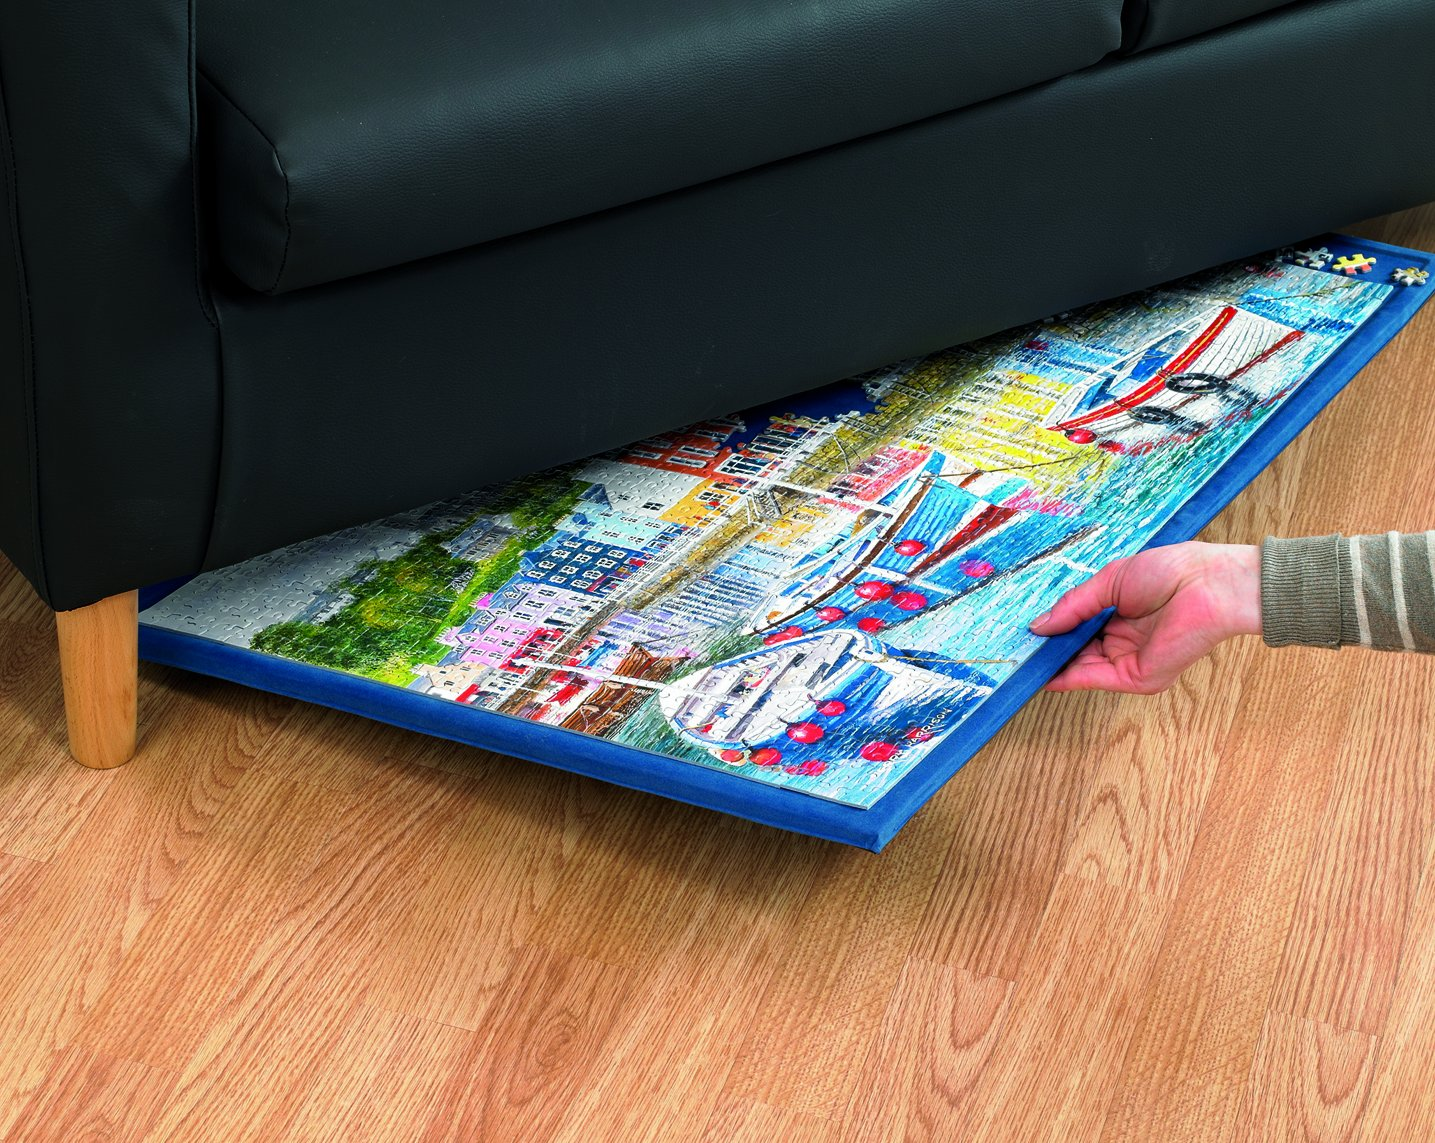 The Puzzle Board by Gibsons fits nicely under the sofa or bed